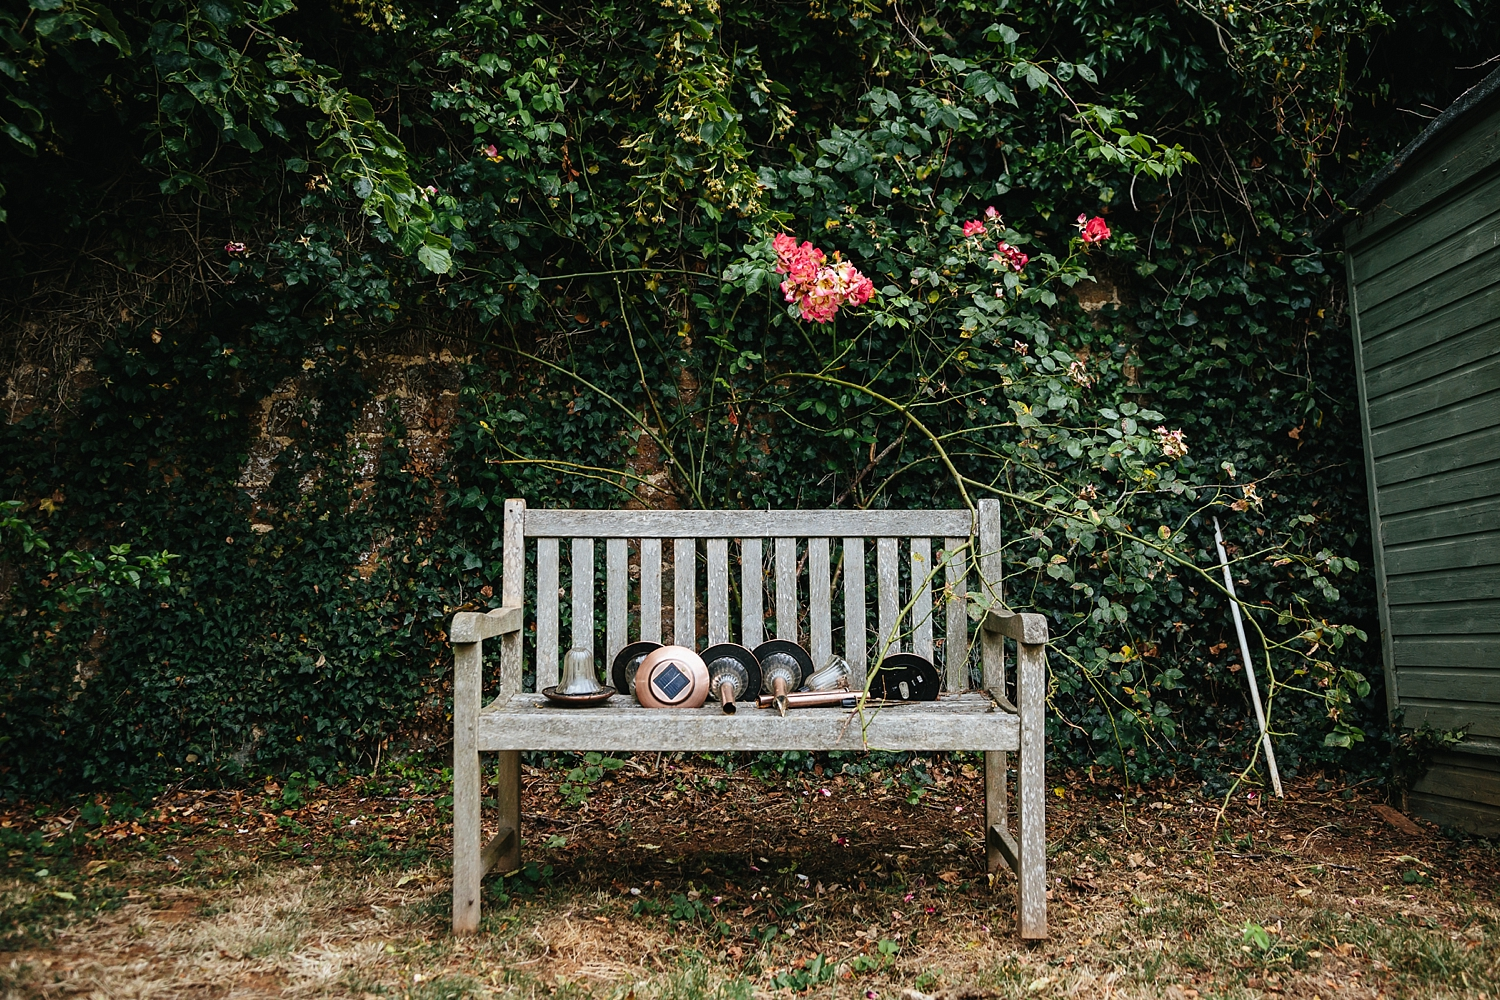 alexvictor-blog-natural-fun-relaxed-documentary-charlotte-jopling-wedding-photography-northamptonshire-home-garden-country-summer-3.jpg